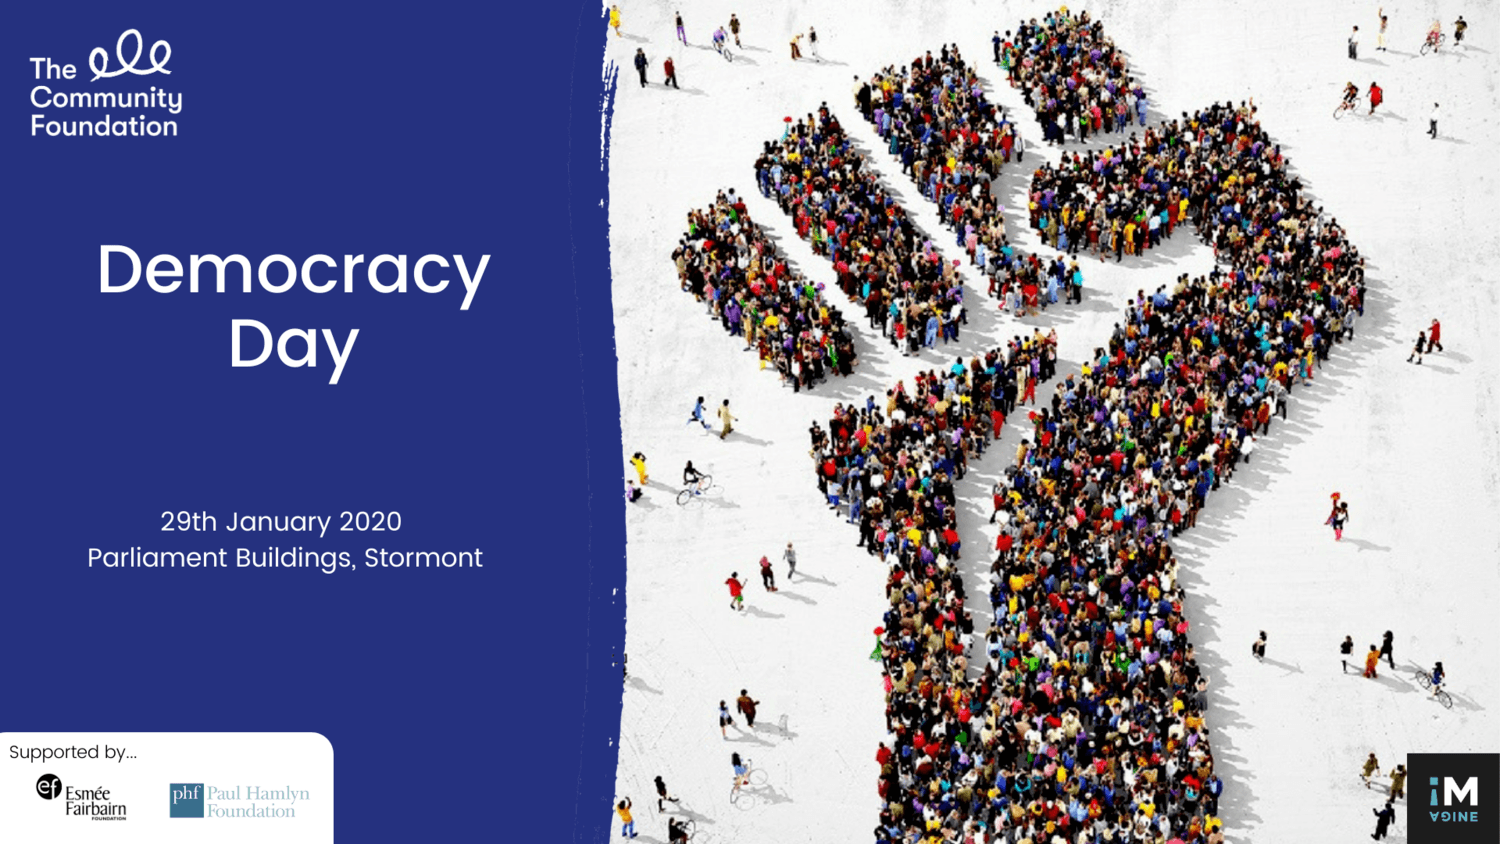 Democracy Day 2020 focused on increasing public participation in democratic decision making at Stormont